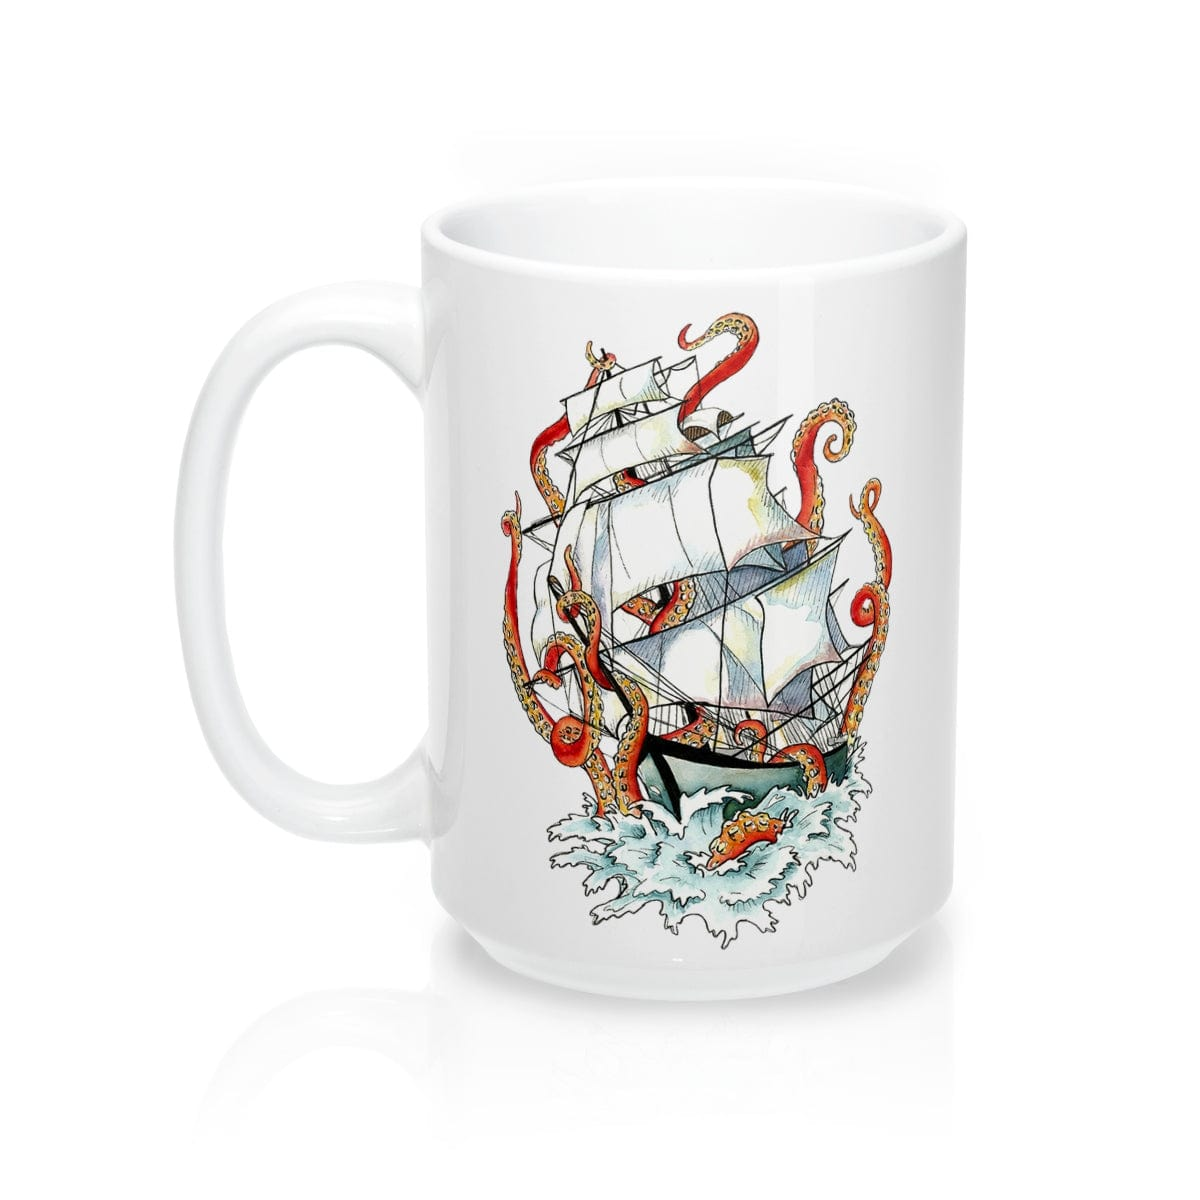 Nautical Vintage Kraken Coffee Mug - Mountains & Mermaids